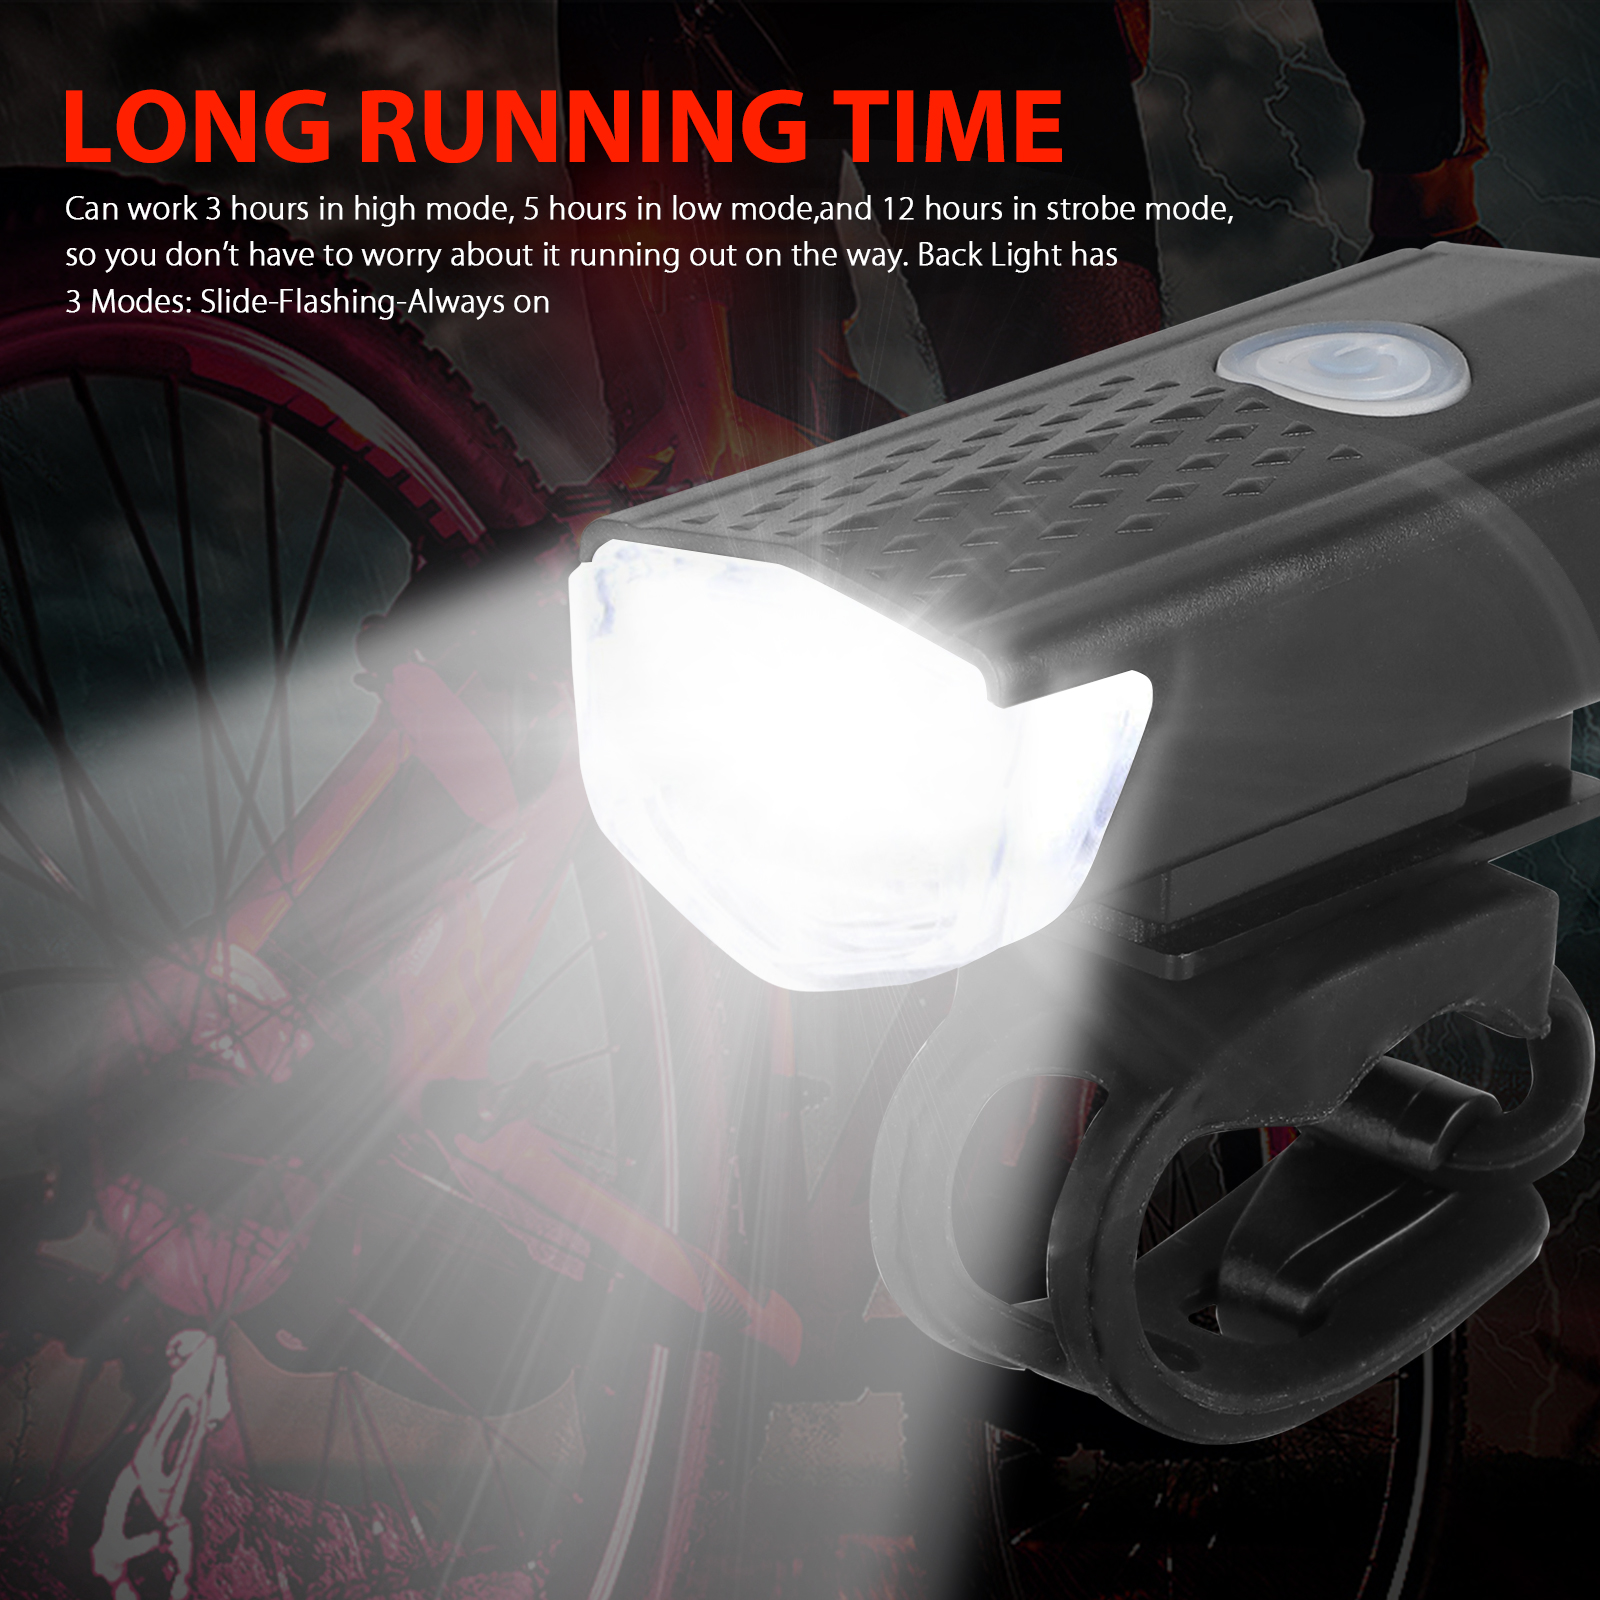 thumbnail 4 - LED-USB-Rechargeable-Bycicle-Light-Headlamp-Headlight-Bike-Front-Rear-Lamp-3Mode